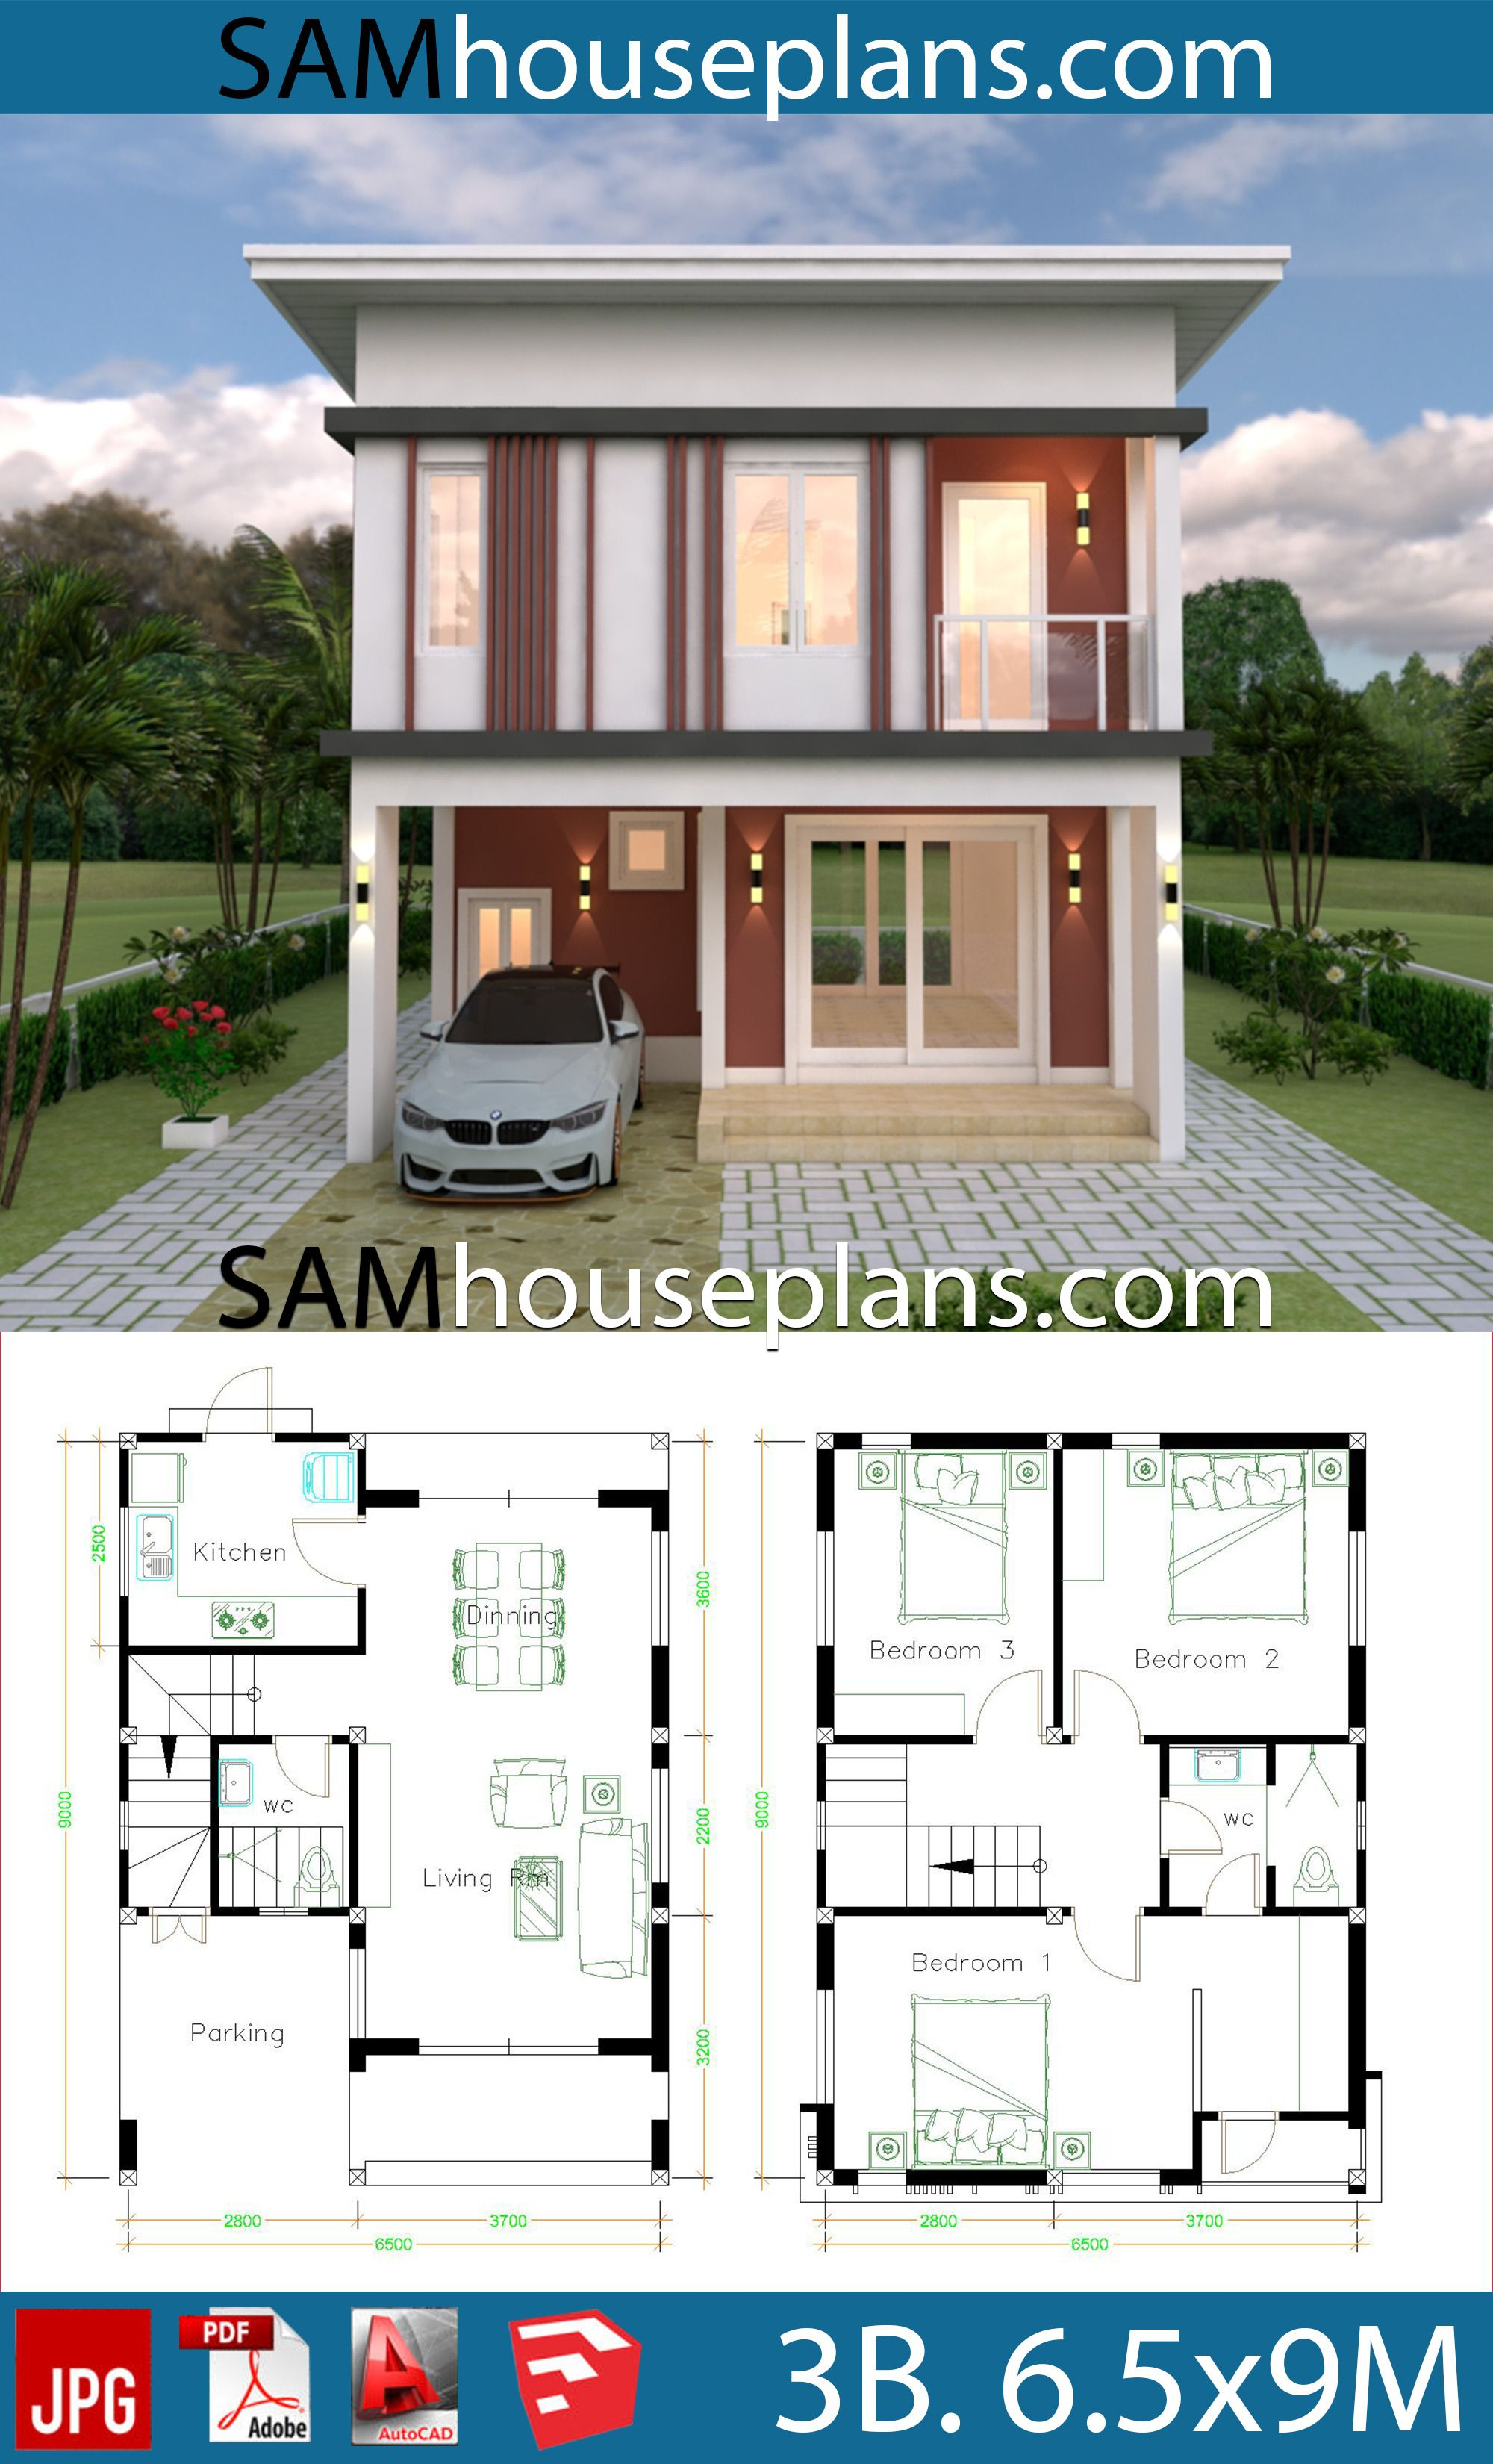 Flat Roof House Plans Design 2021 Flat Roof House Model House Plan House Construction Plan